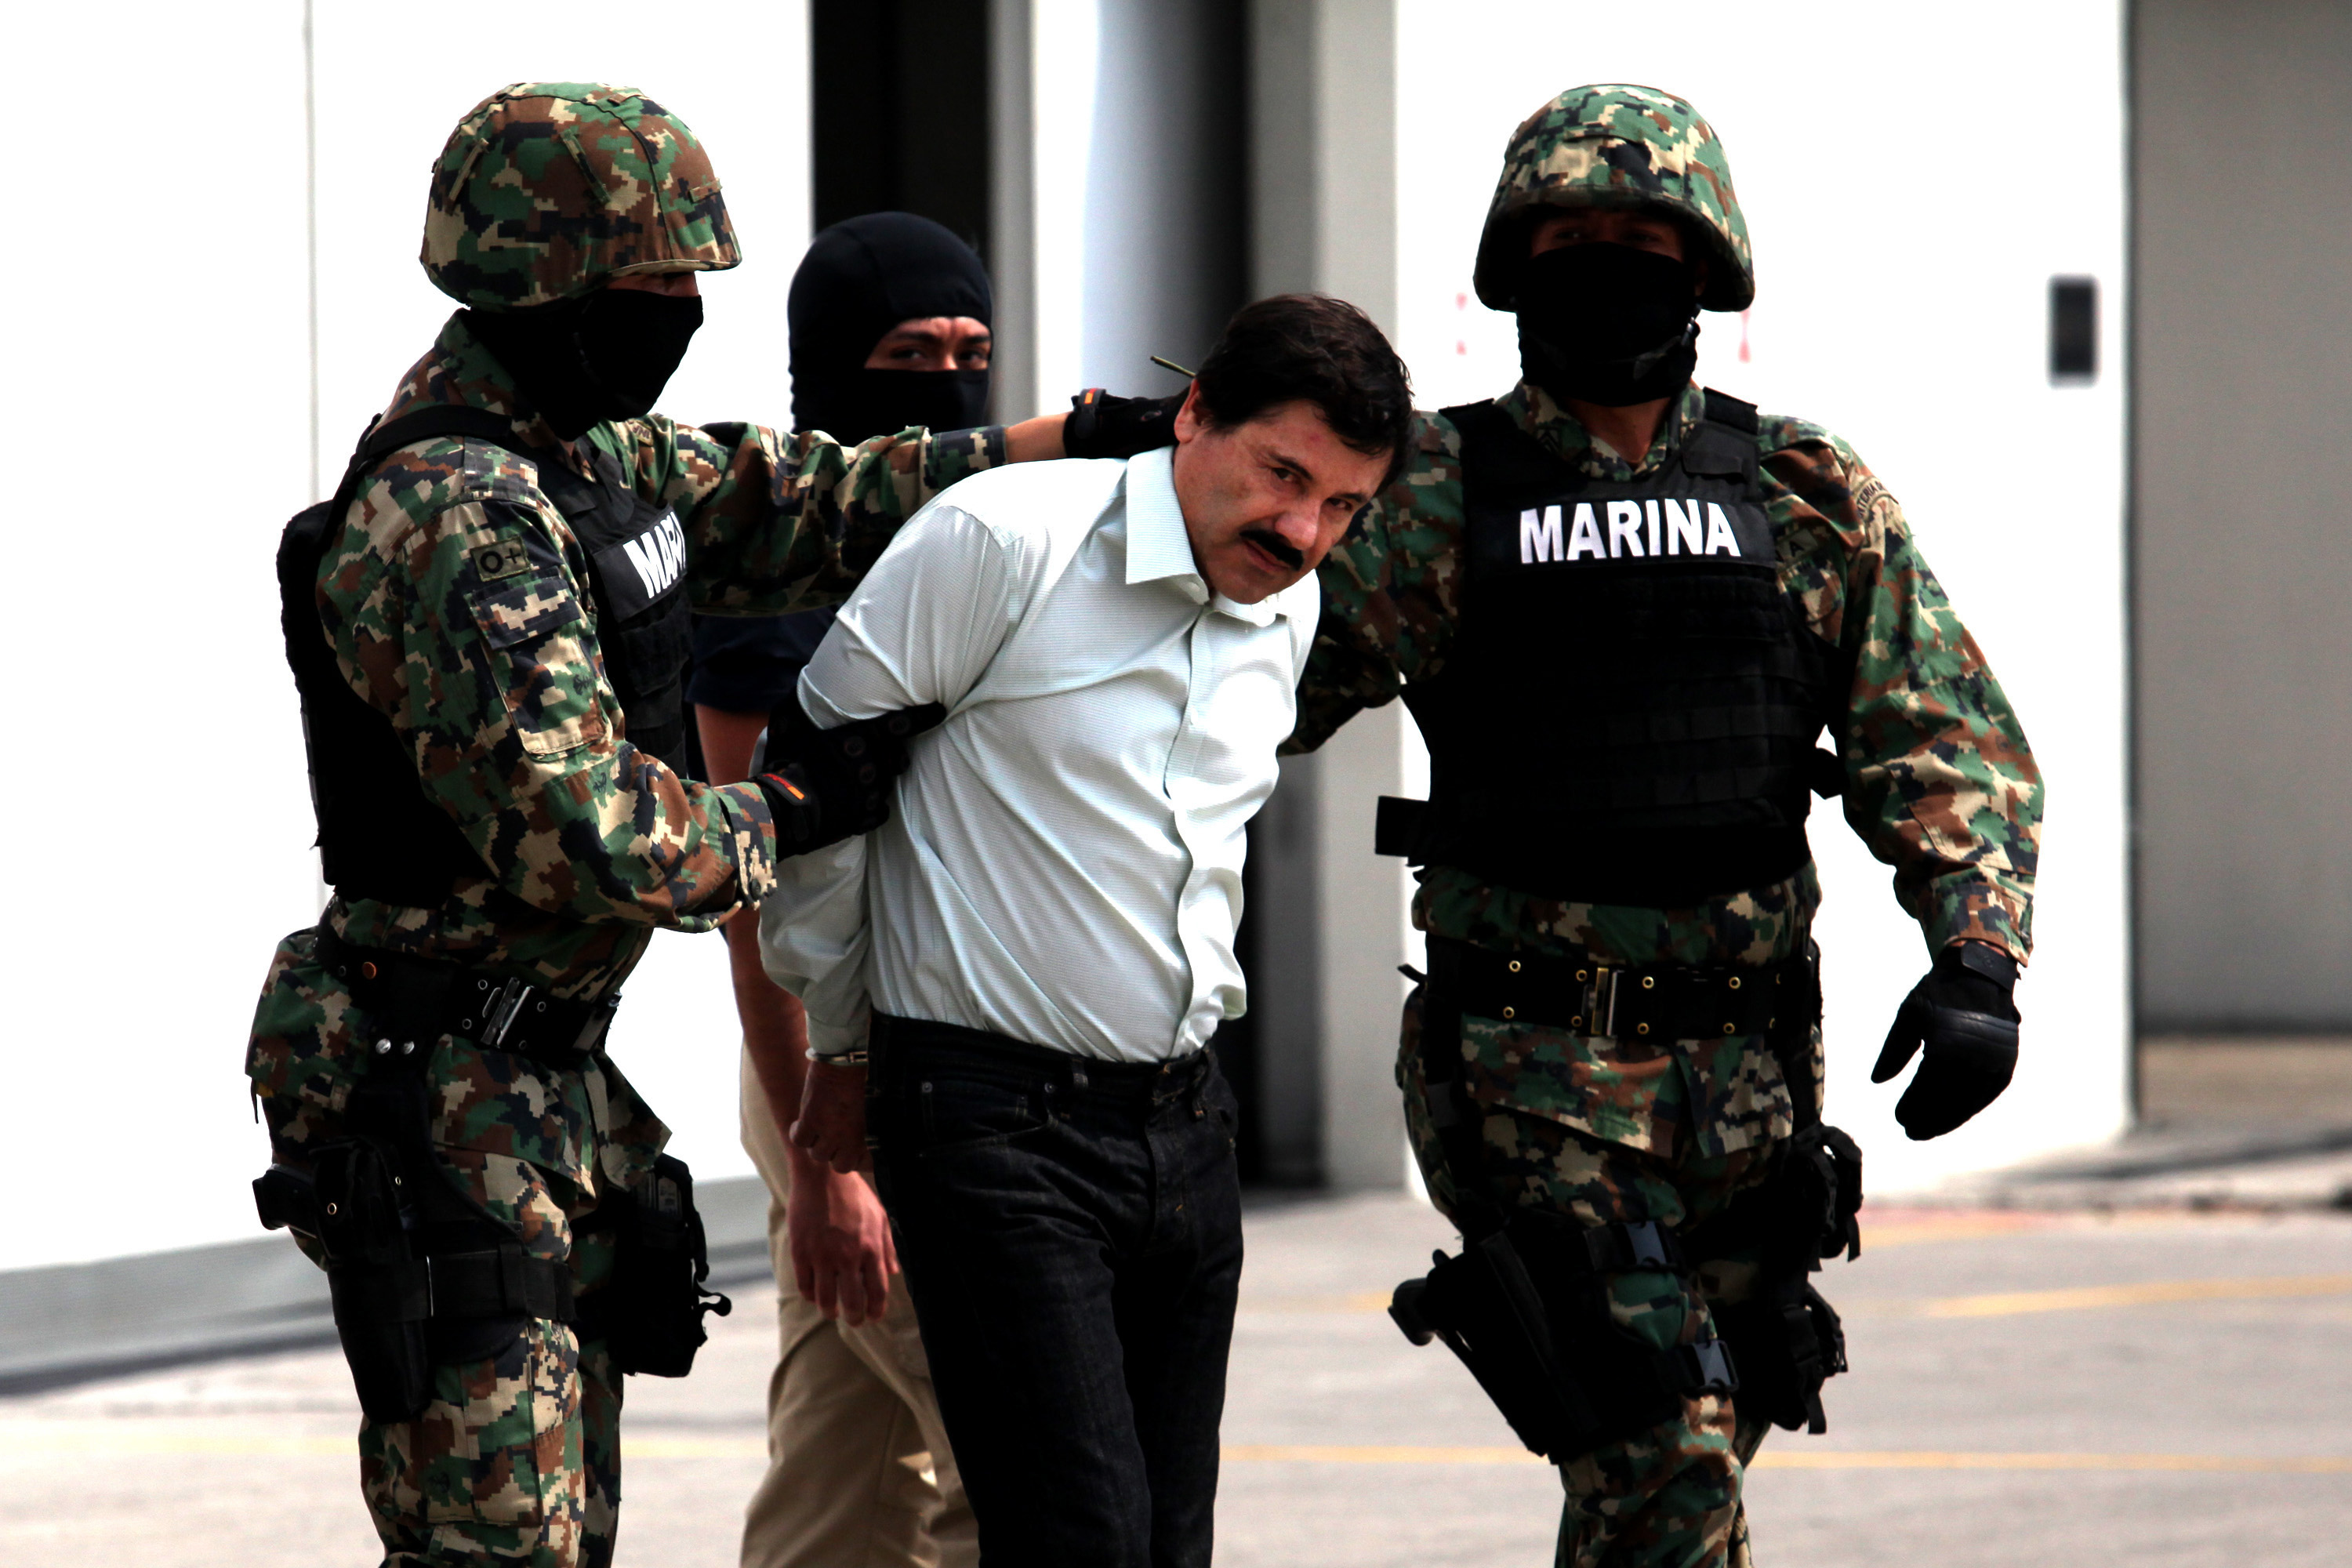 Mexico Captures Sinaloa cartel drug lord ' El Chapo' Guzman